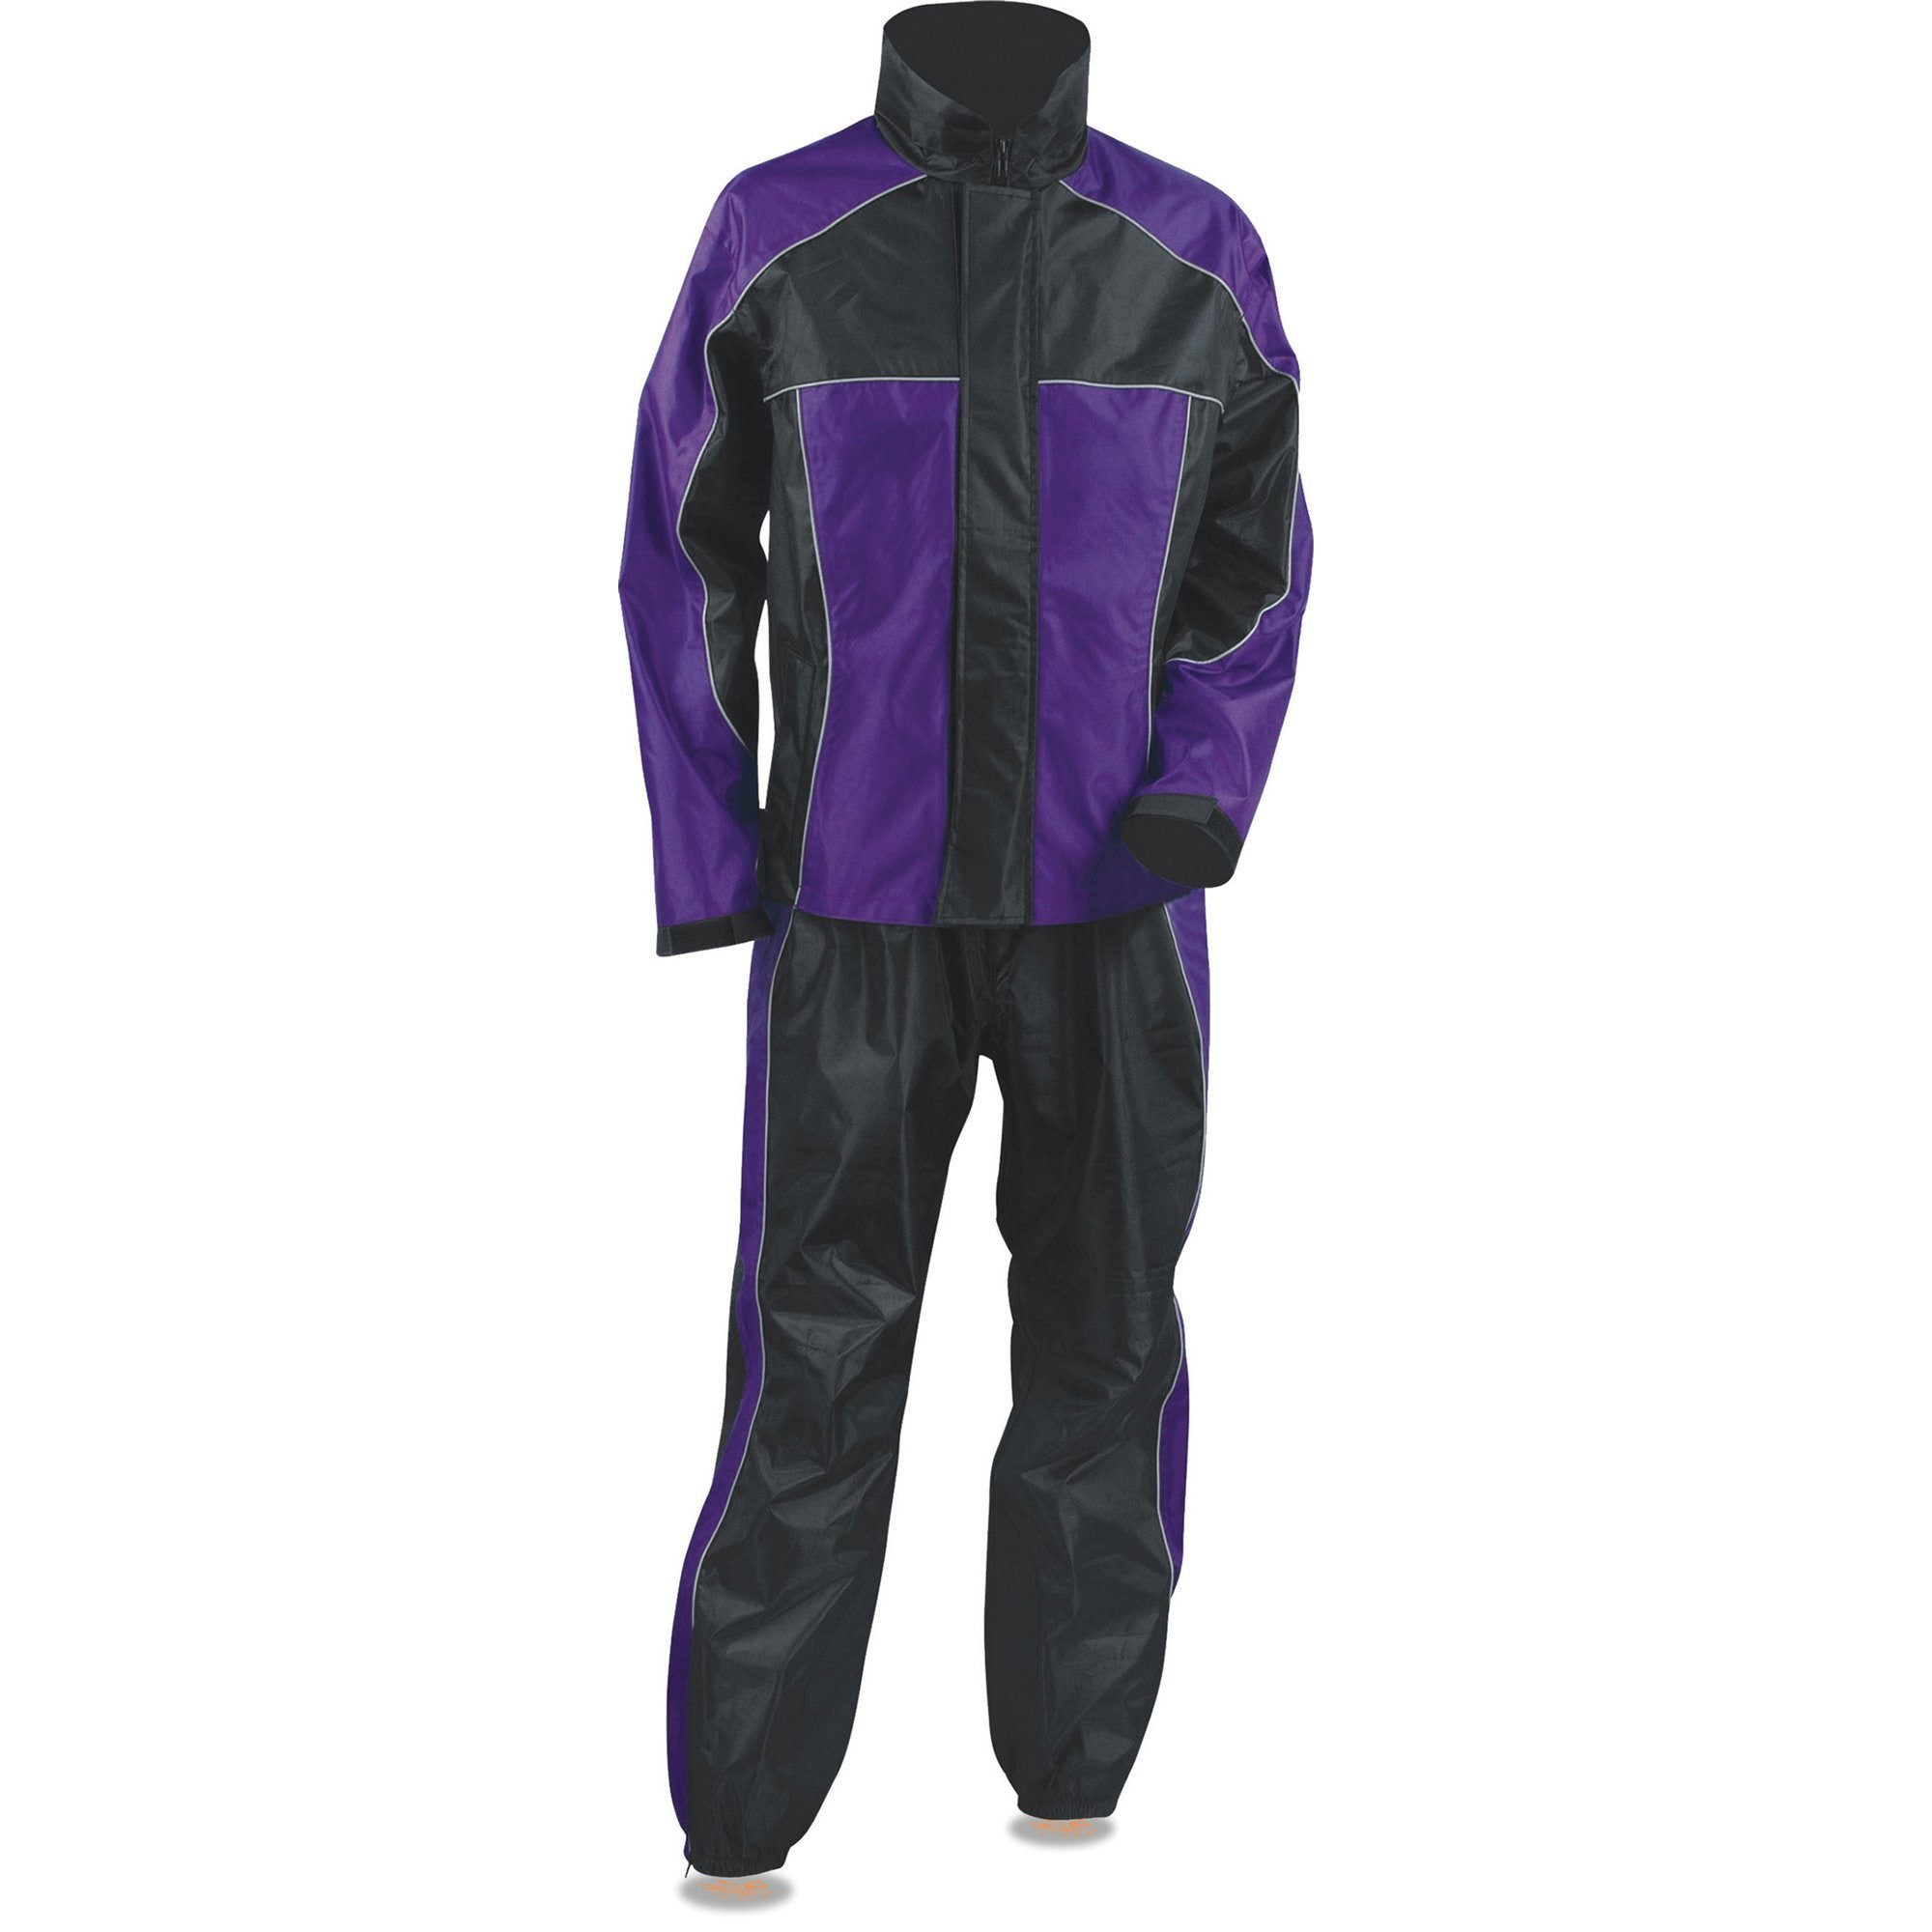 NexGen SH2222 Ladies Purple and Black Oxford Water Proof Rain Suit